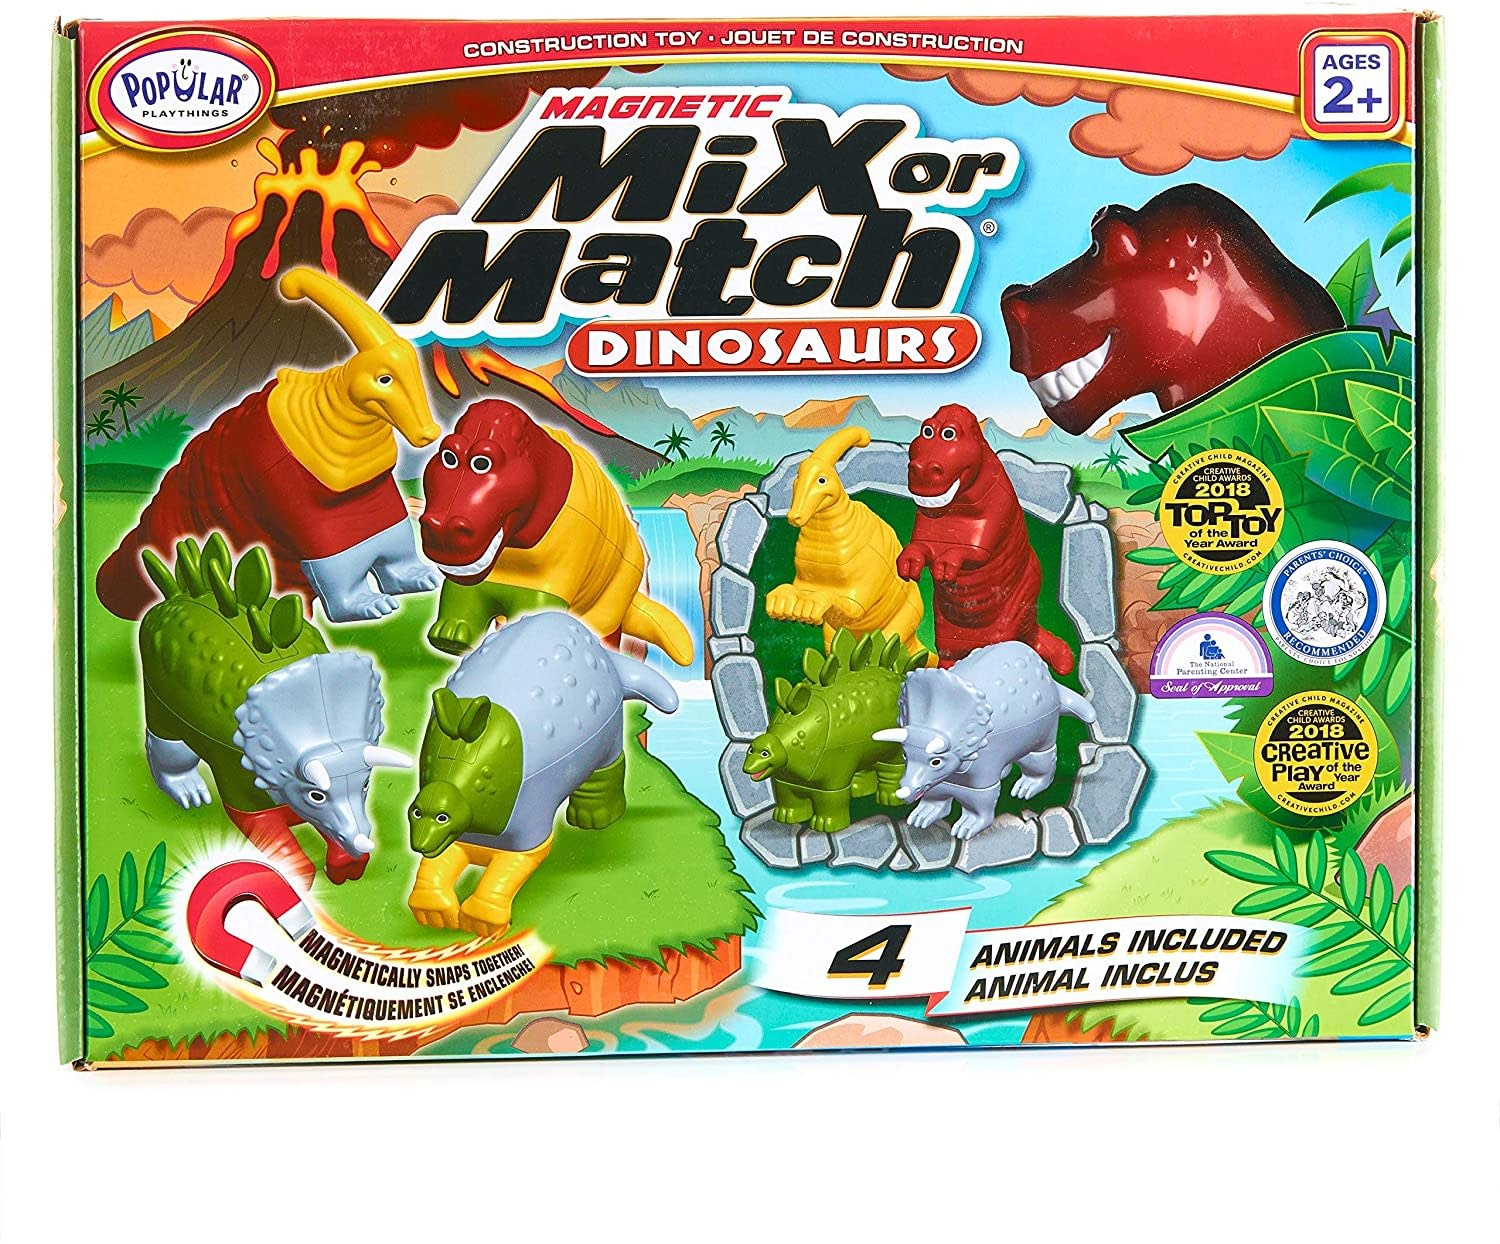 Magnetic Mix or Match Dinosaurs by Popular Playthings